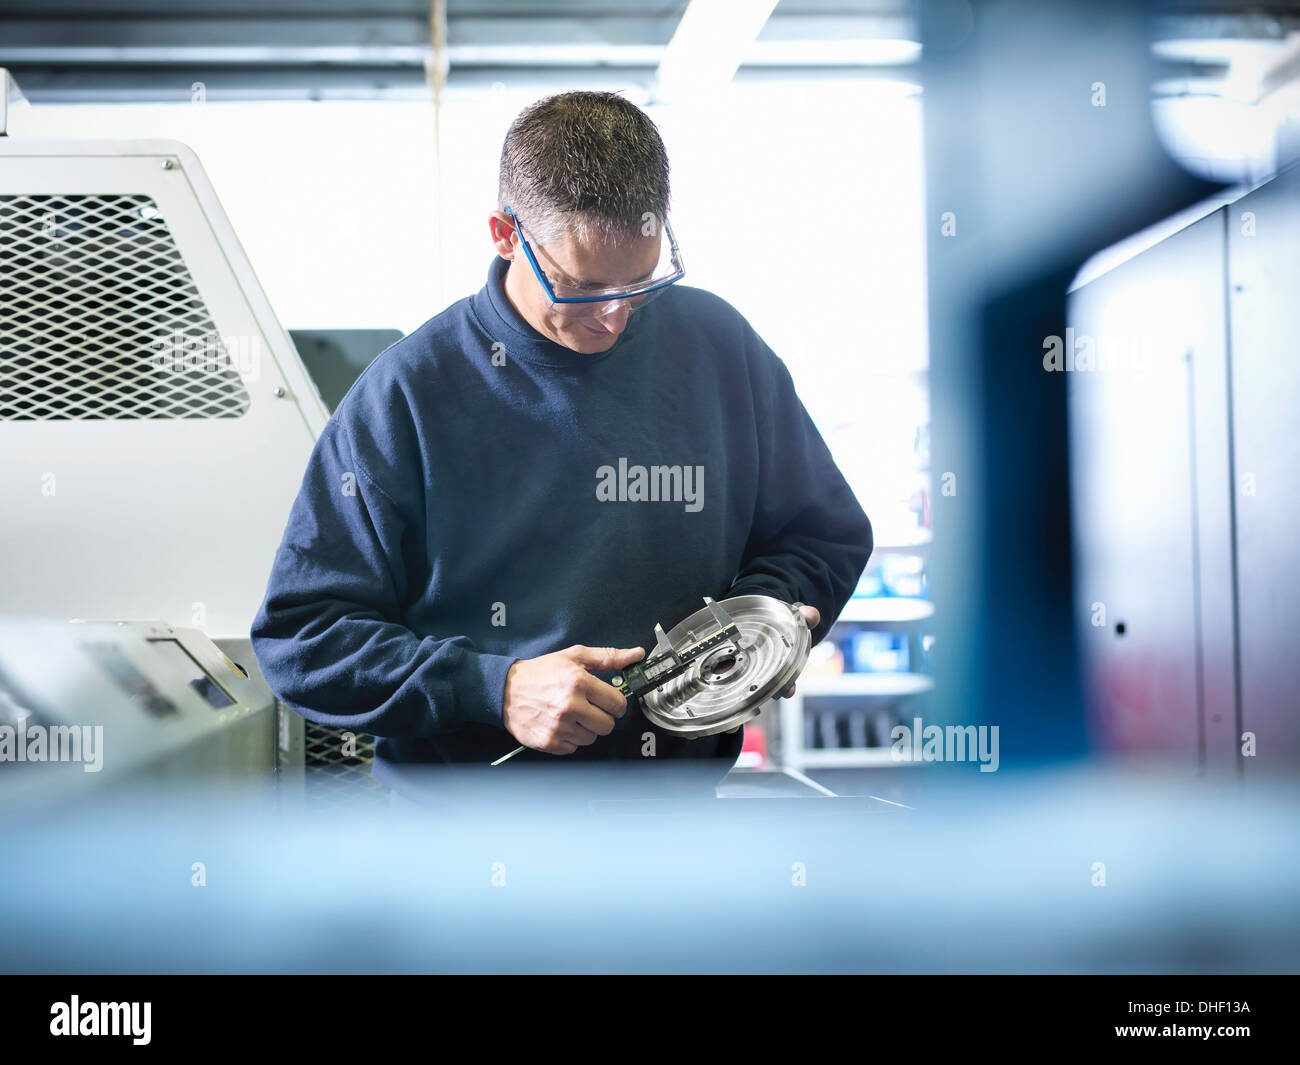 Engineer measuring metal part in factory - Stock Image